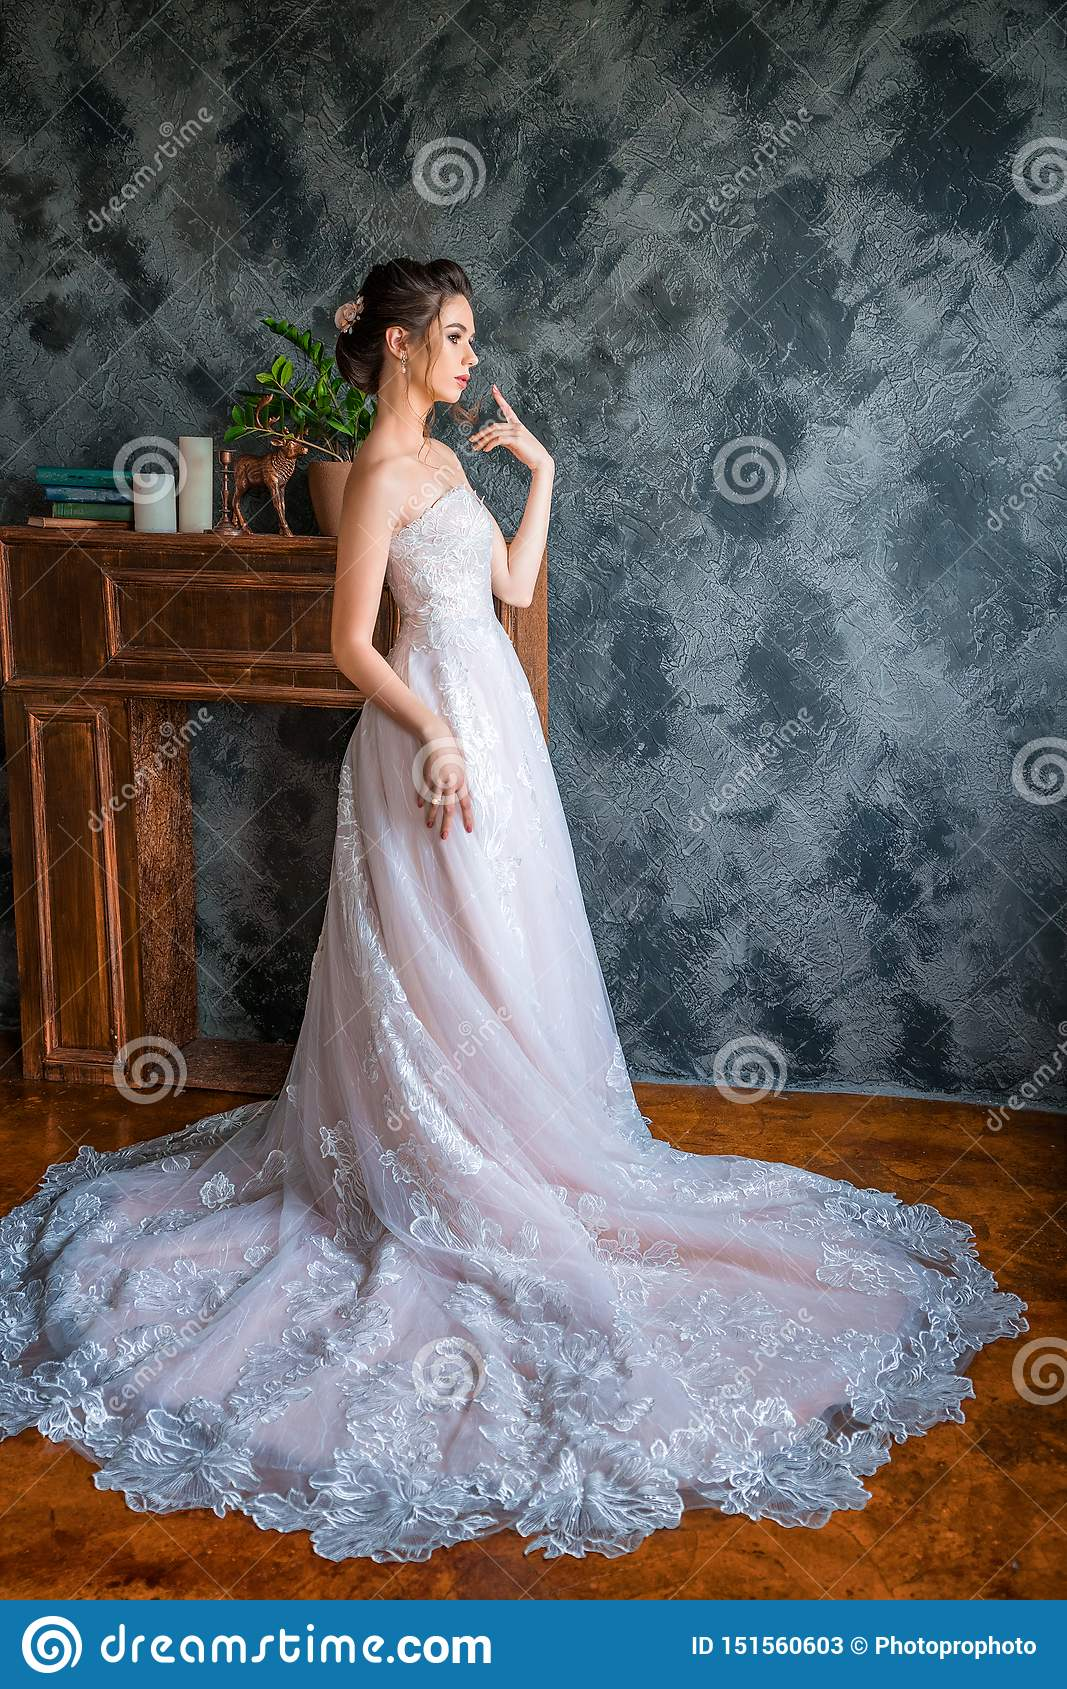 Young bride in long dress posing for the camera